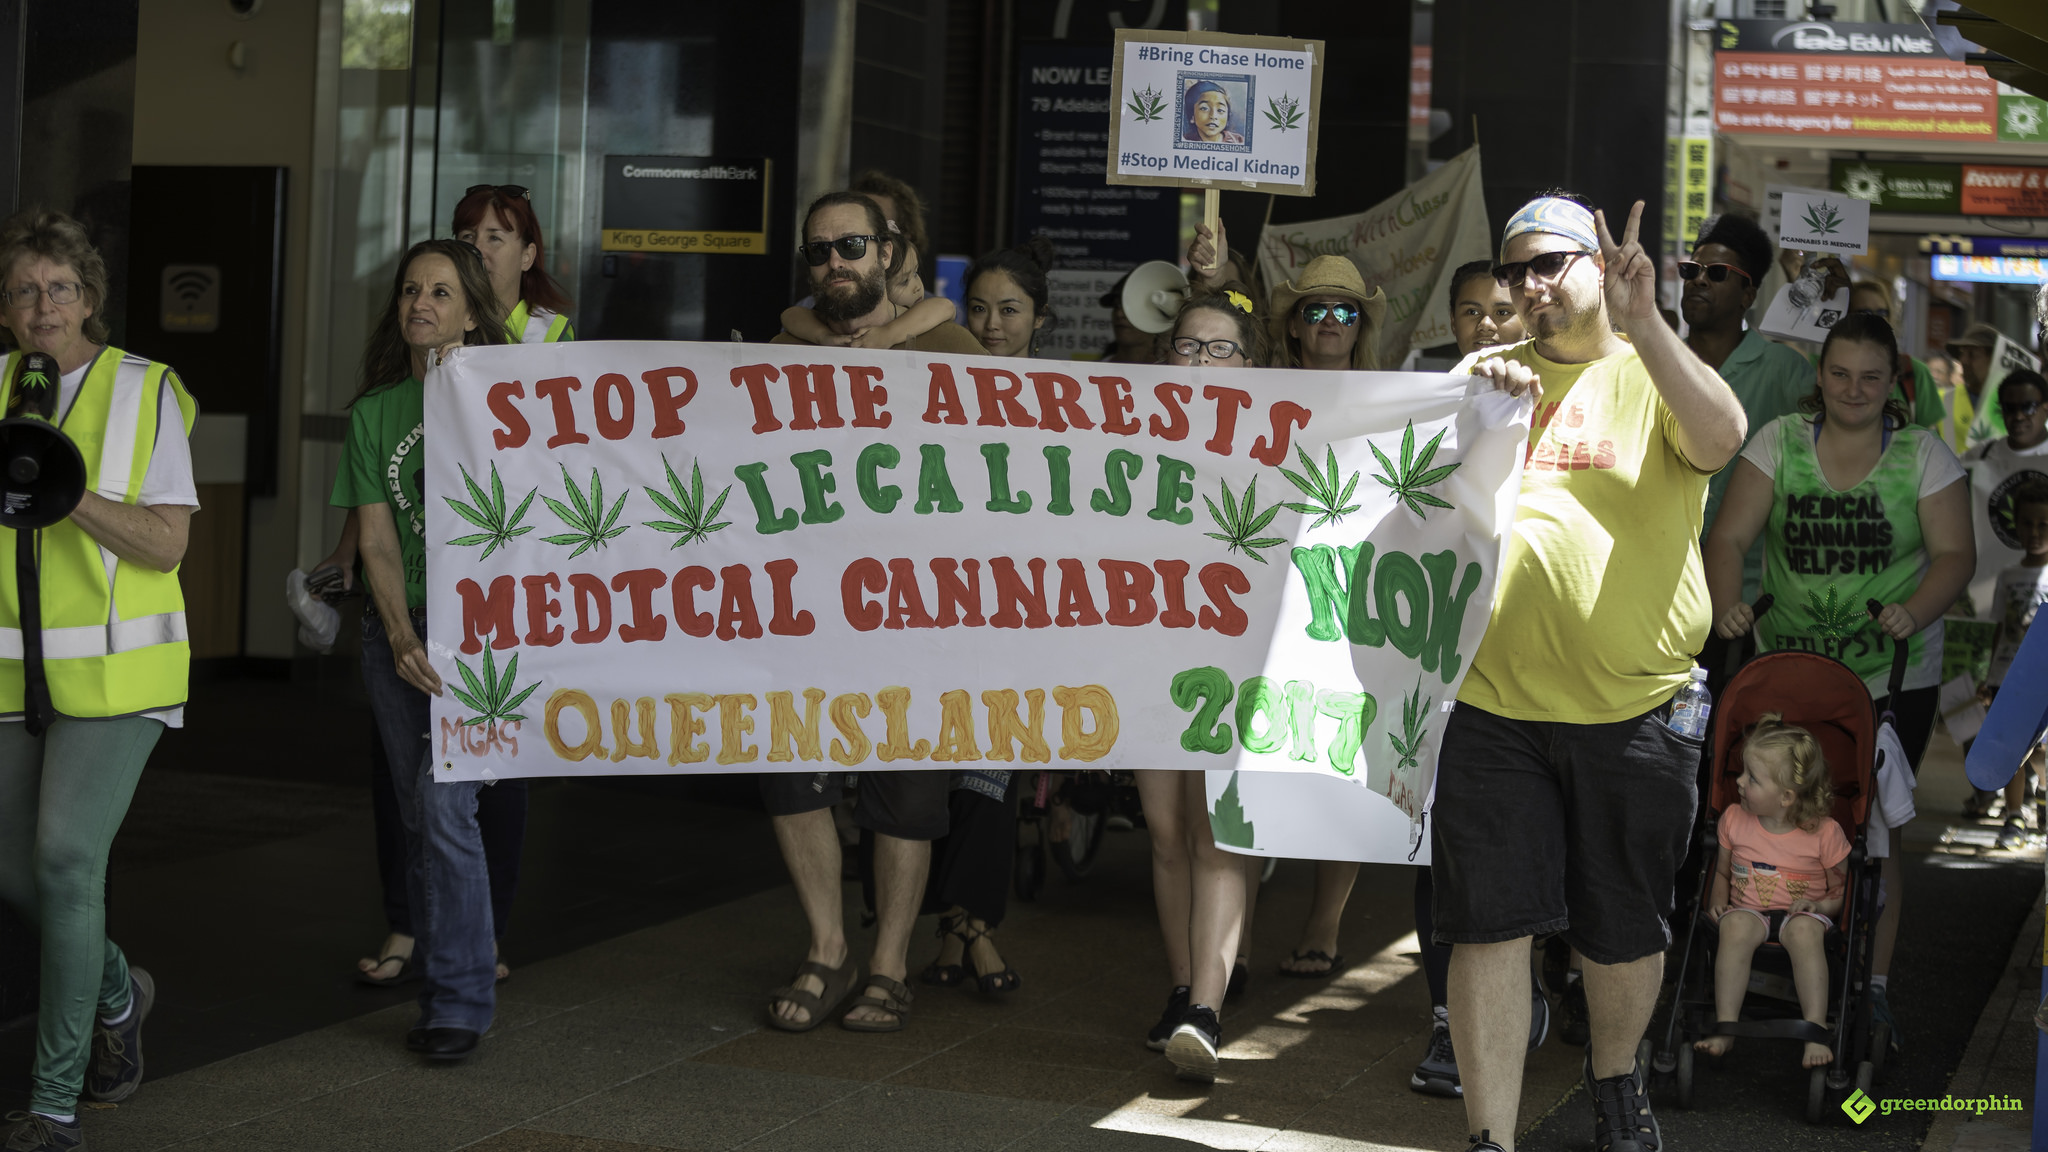 Medical Cannabis Law Reform Rally and March - Brisbane Australia